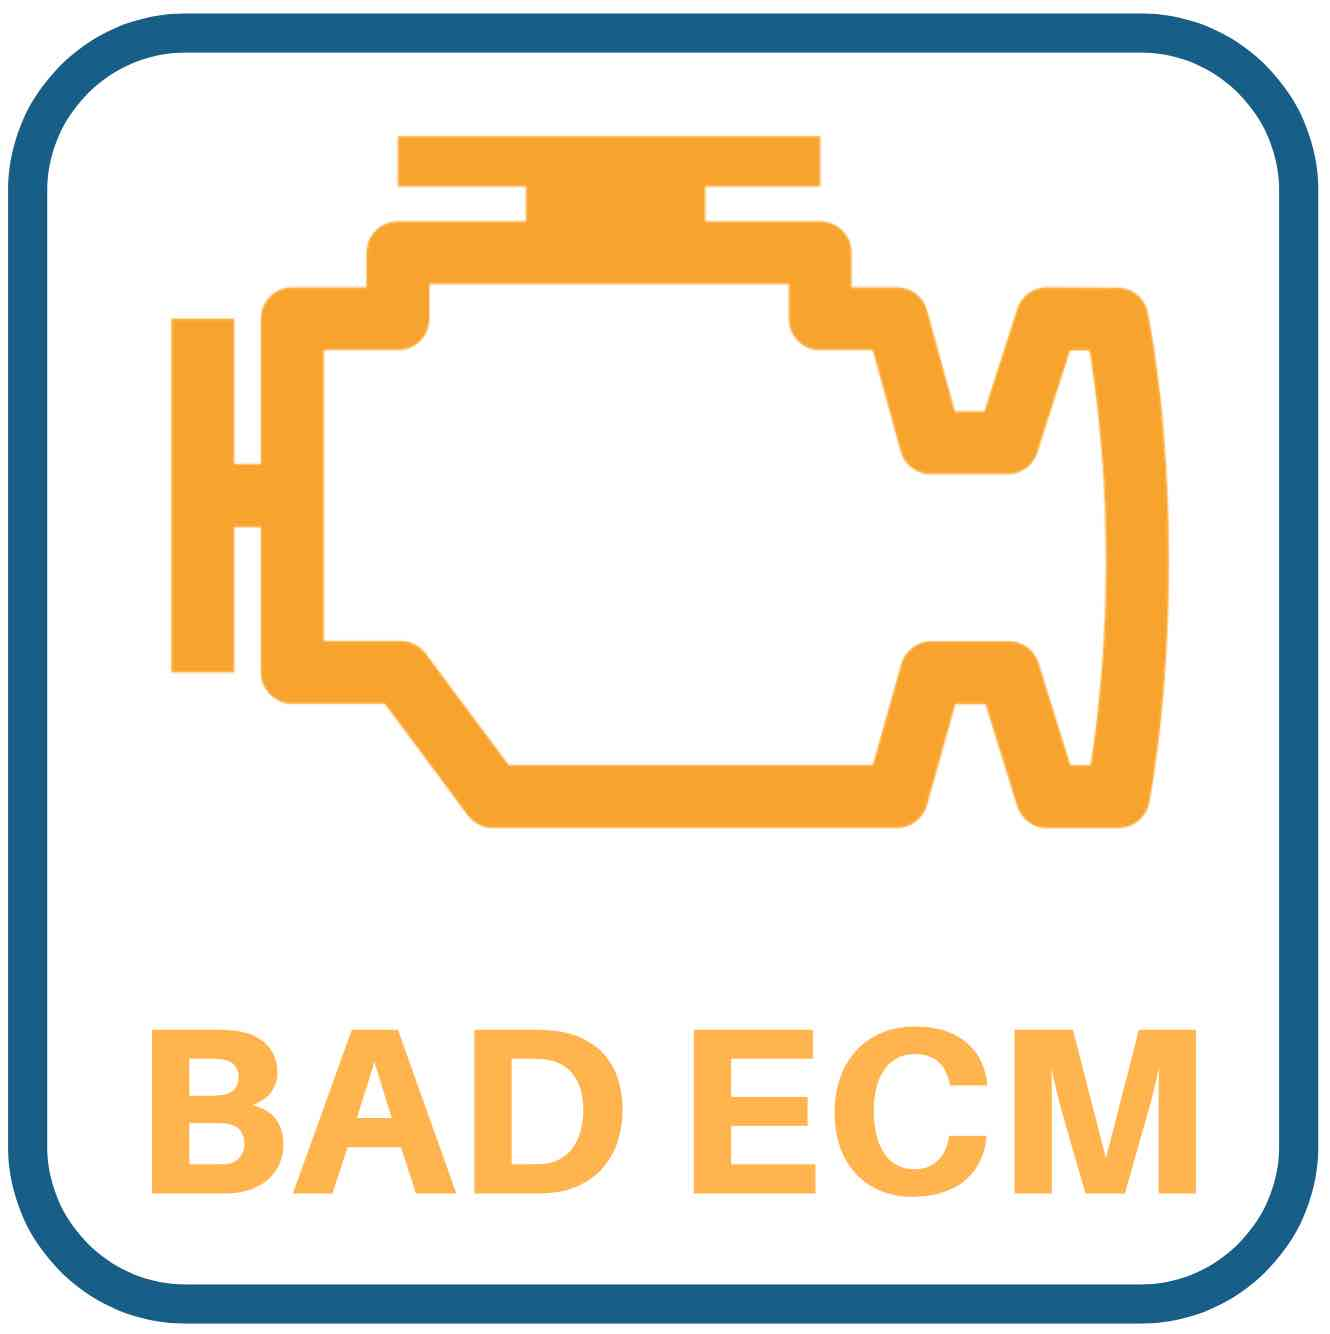 Honda Pilot Bad ECM Symptoms